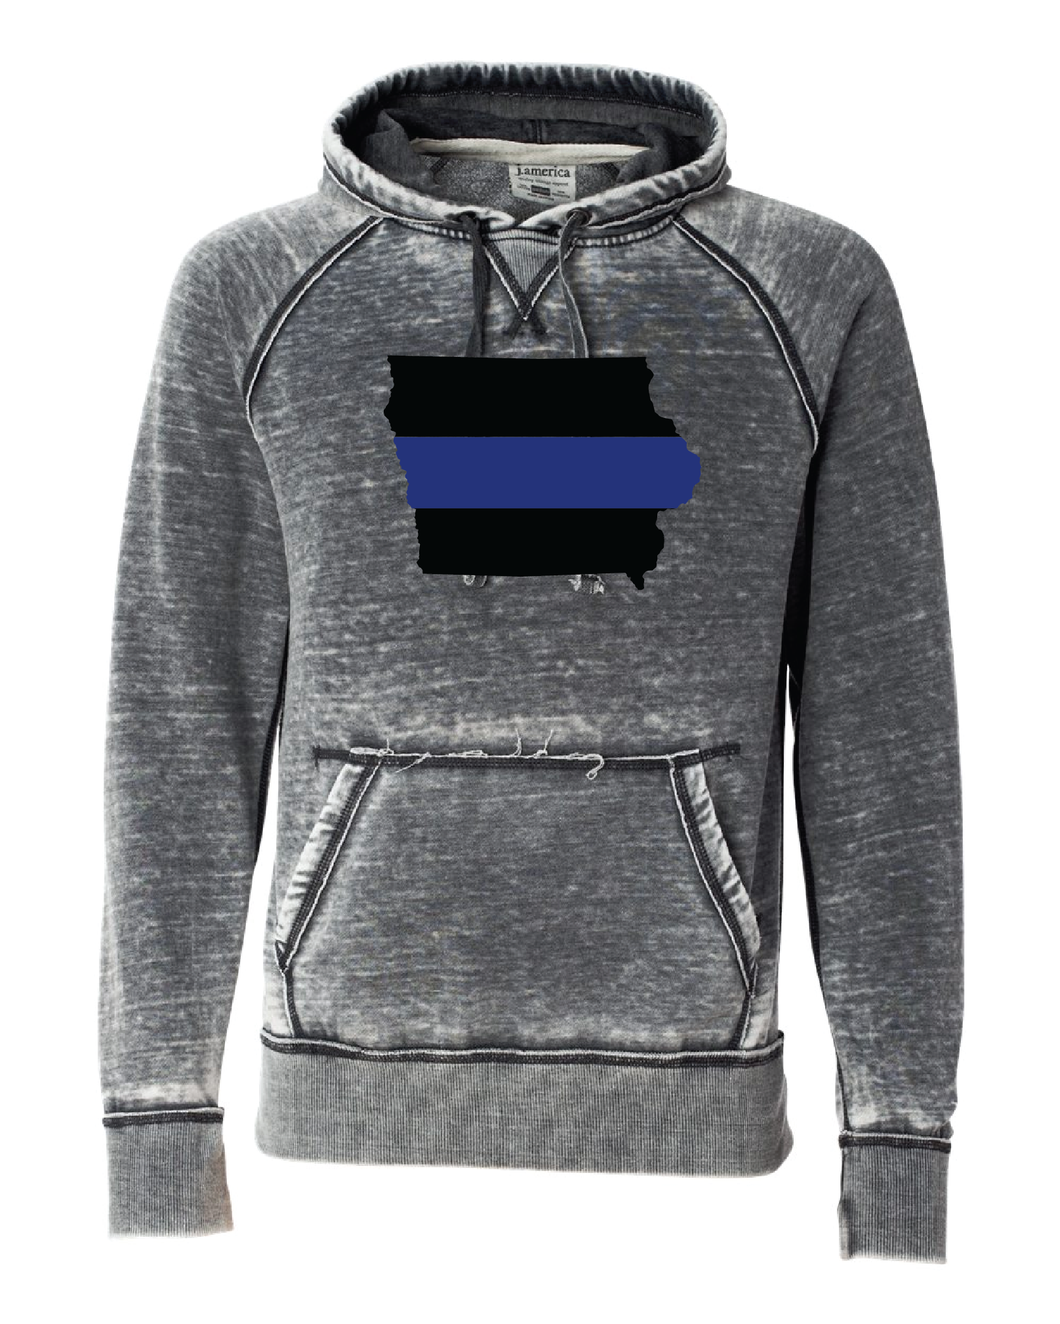 J.AMERICA Vintage Zen Hoodie with State of Iowa and Blue Line